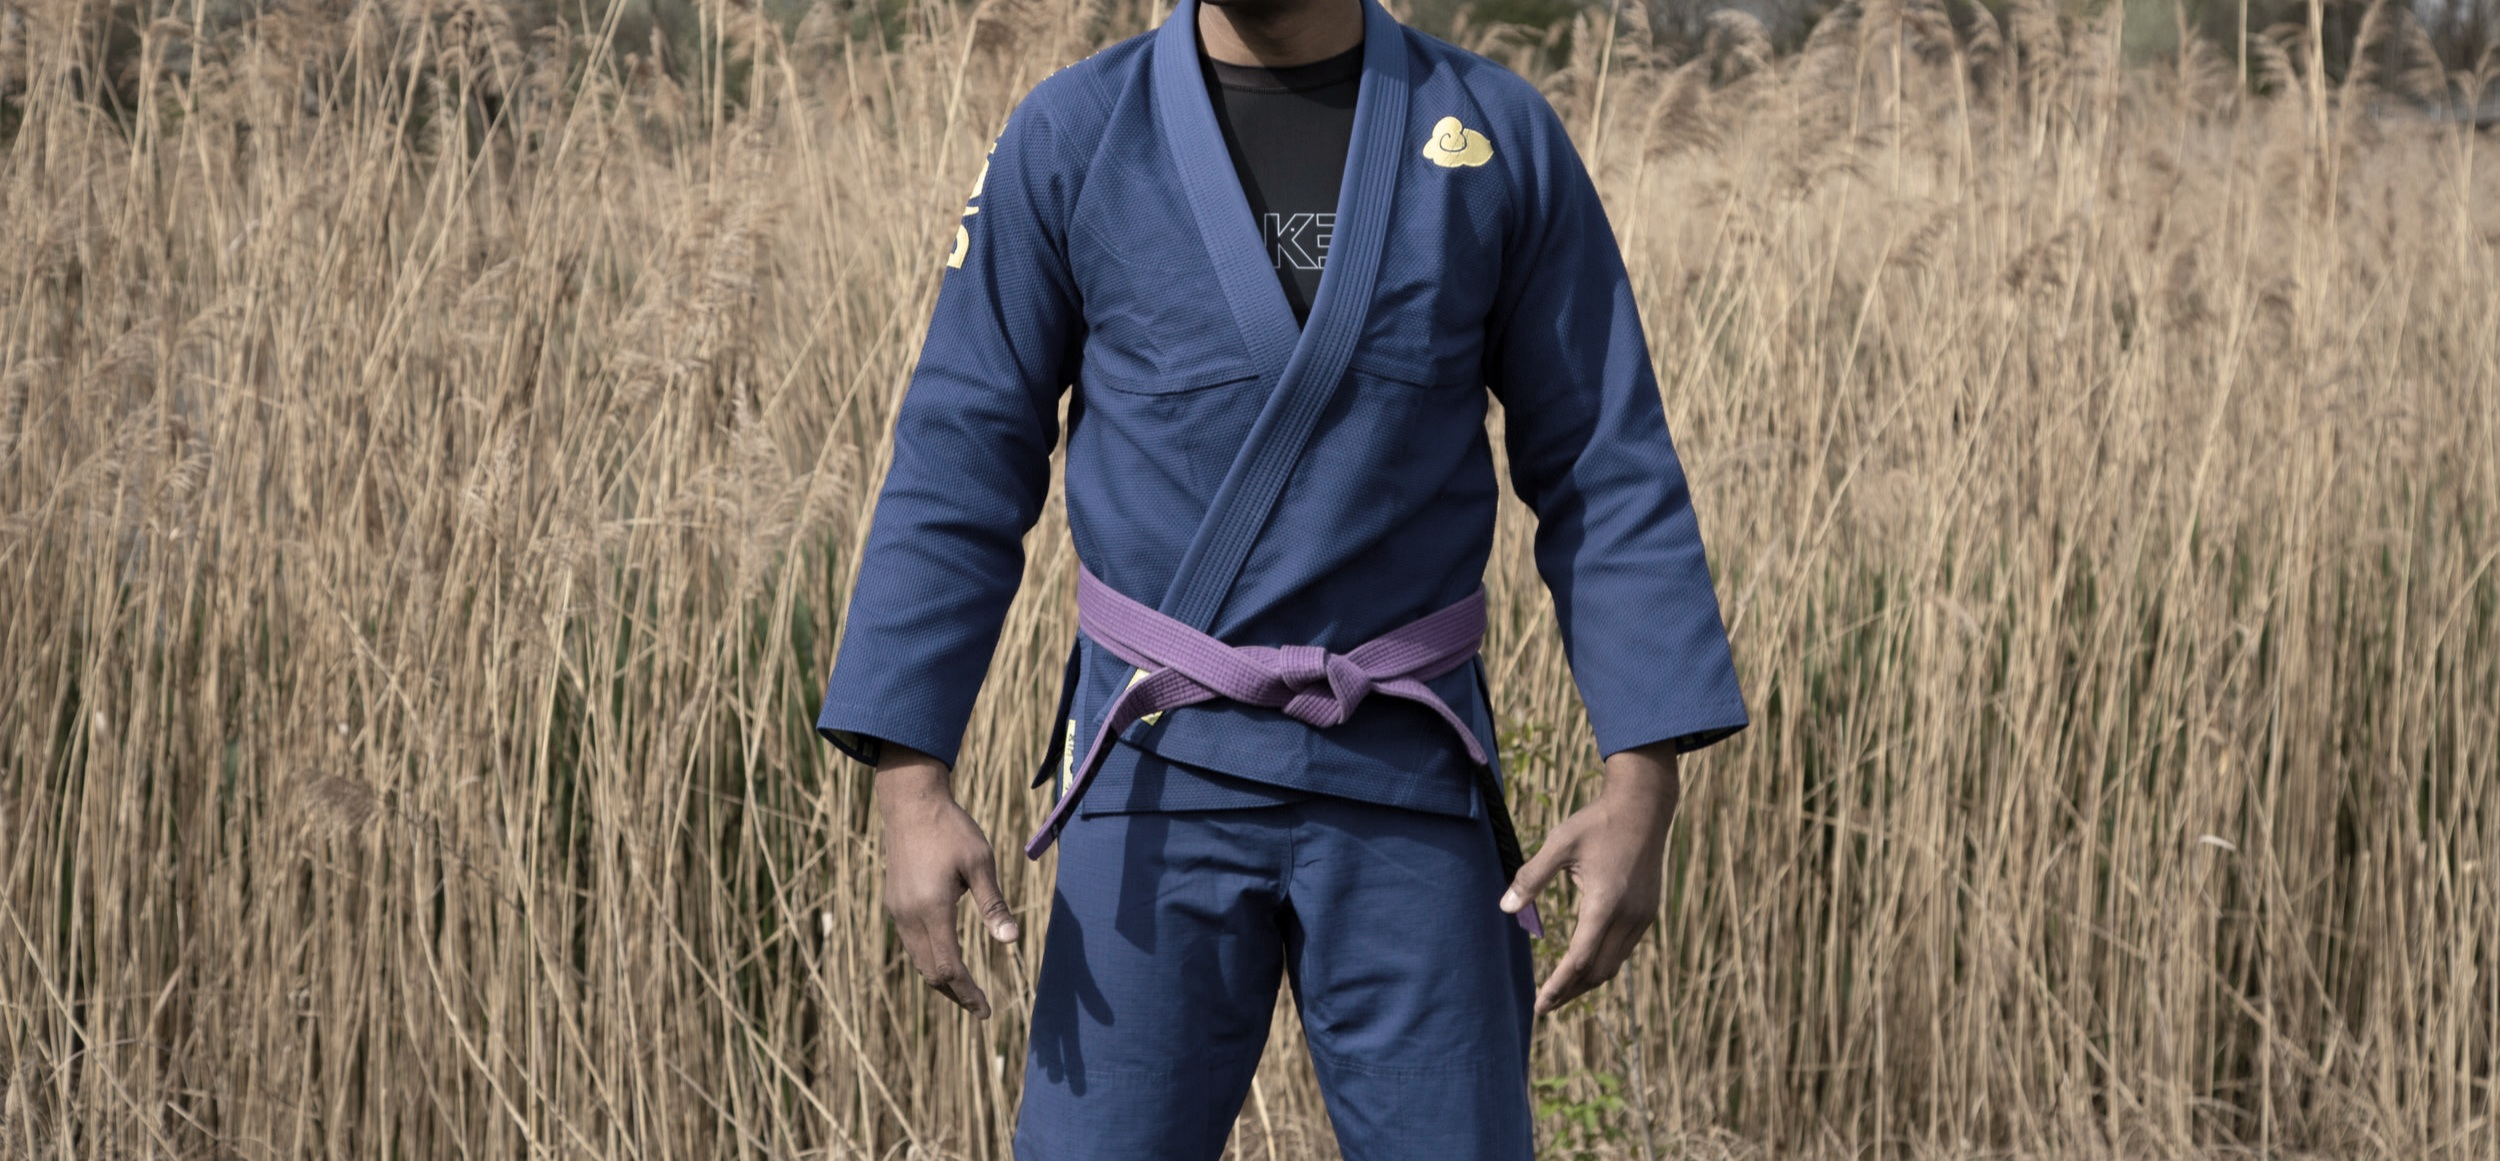 Temple Gi Blue and Temple Rashguard underneath Model: Bryan Thompson IBJJF World Champion